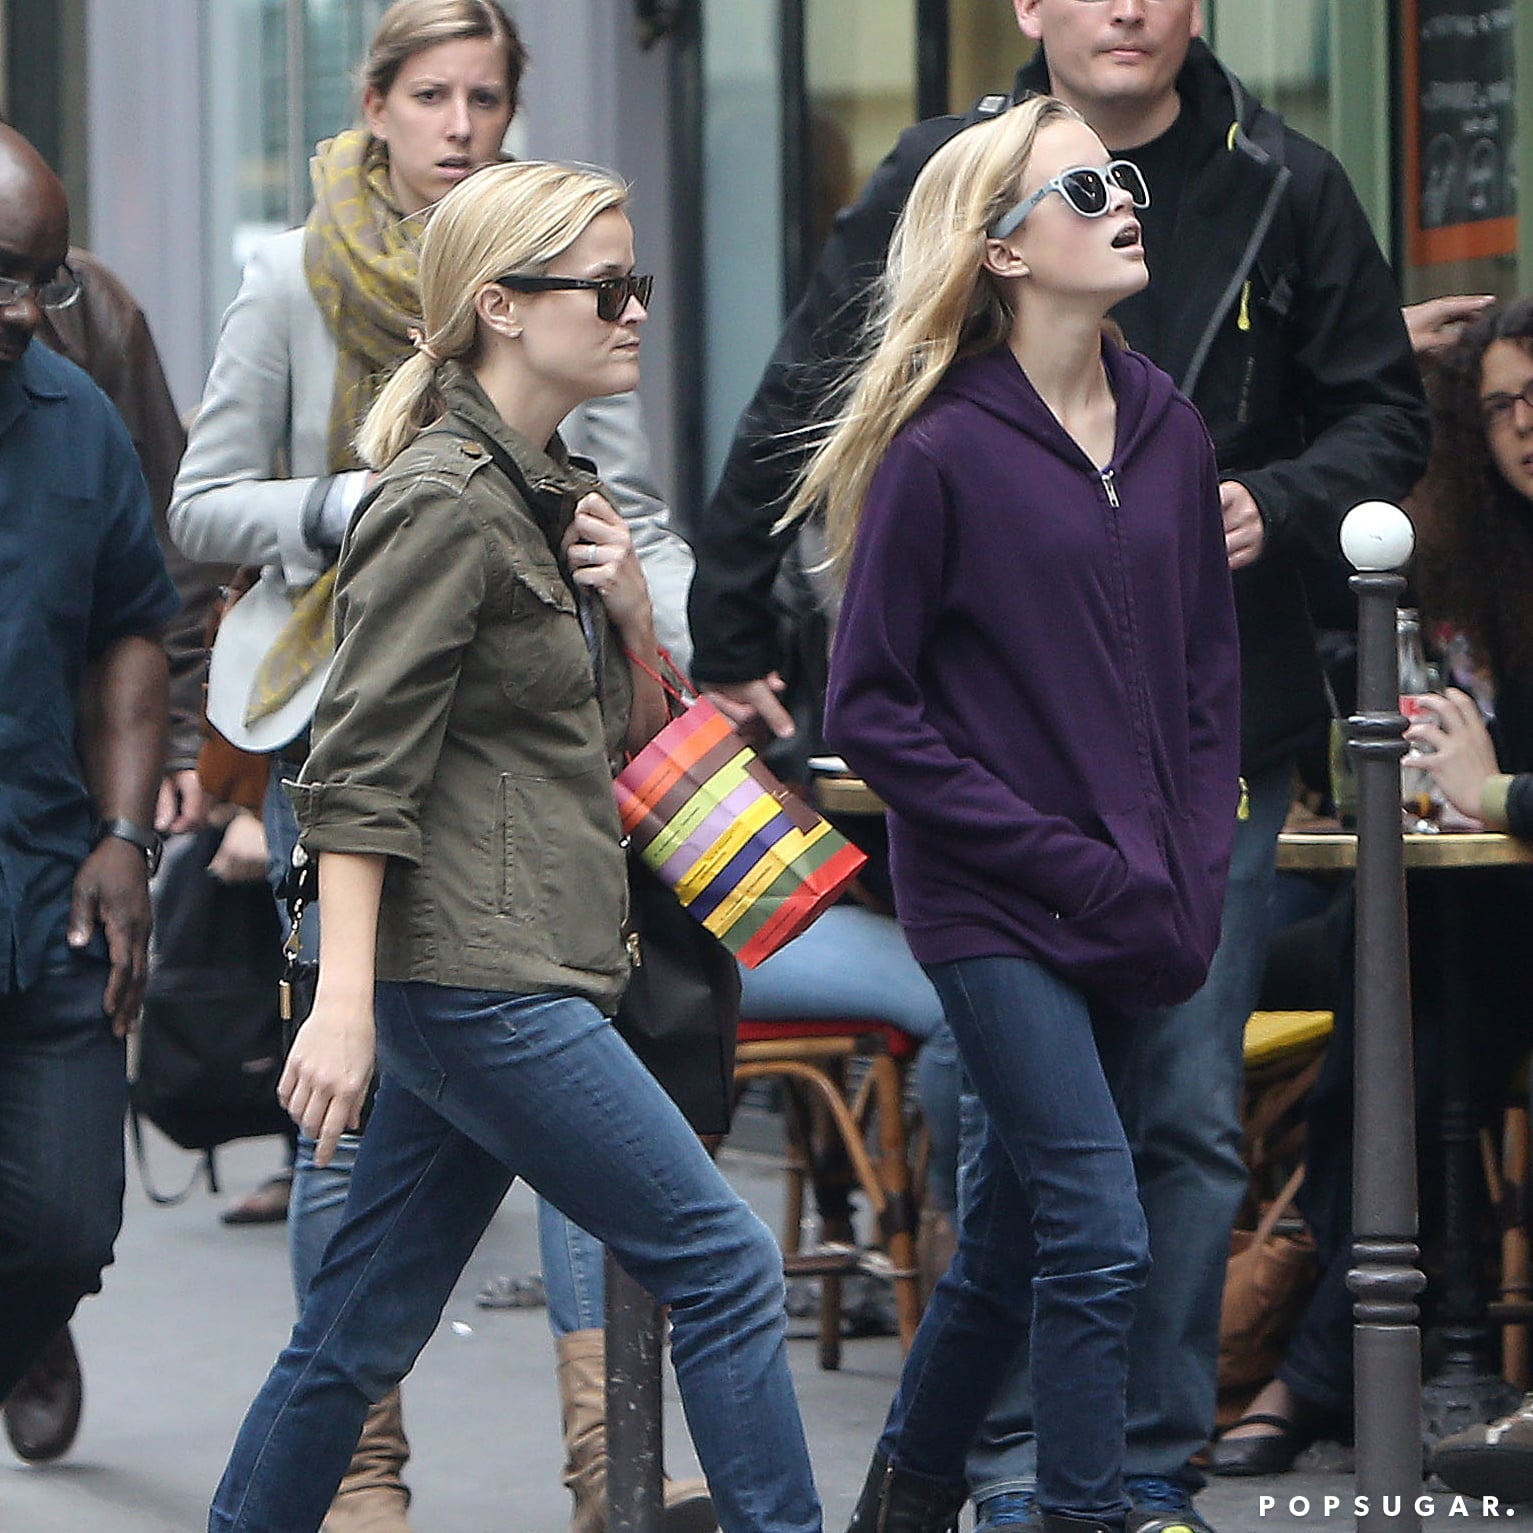 Reese Witherspoon and her daughter, Ava, toured Paris.